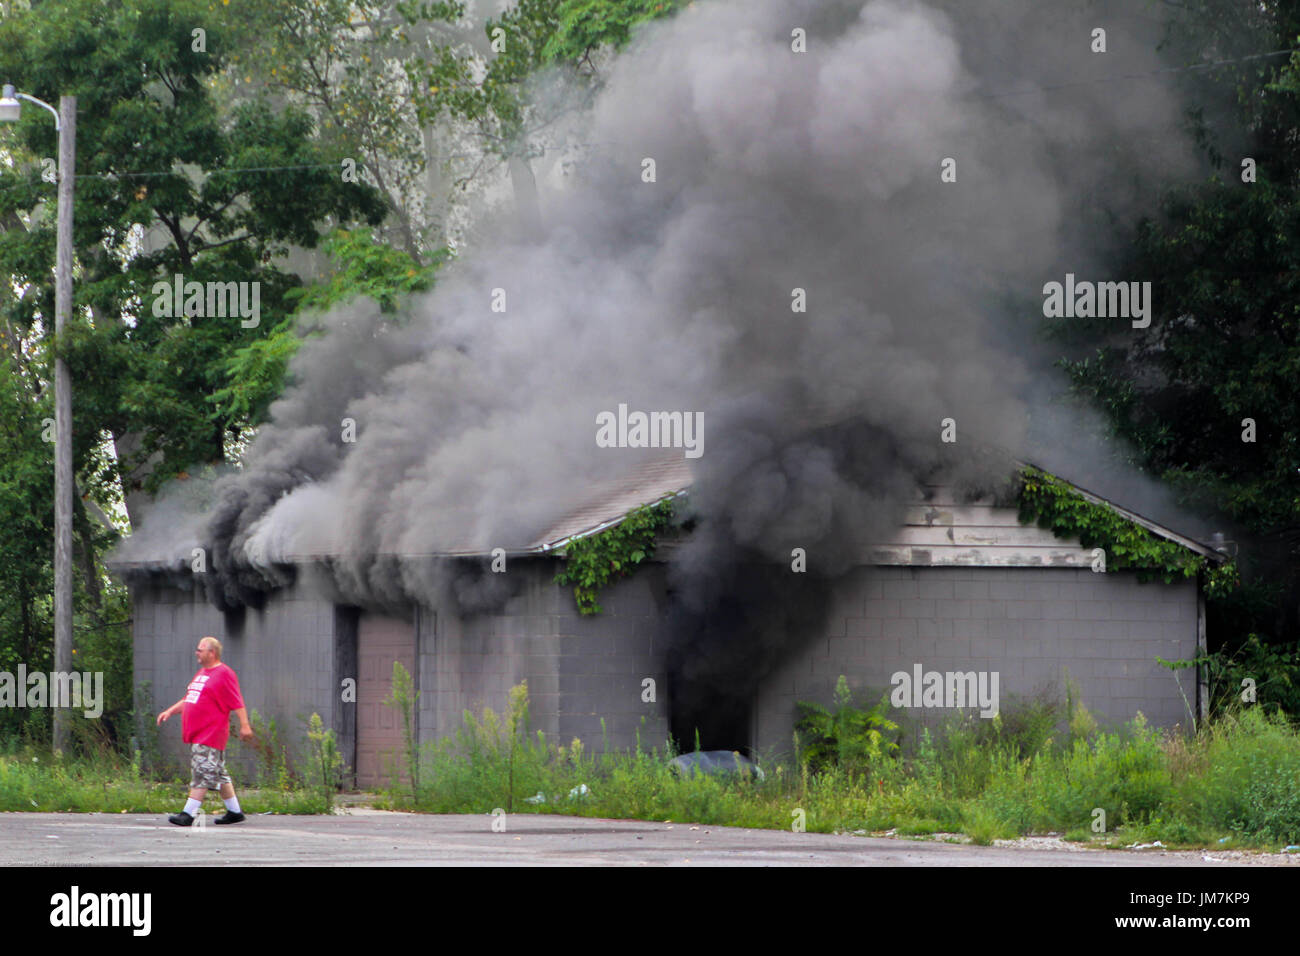 Man walks away from burning building. - Stock Image